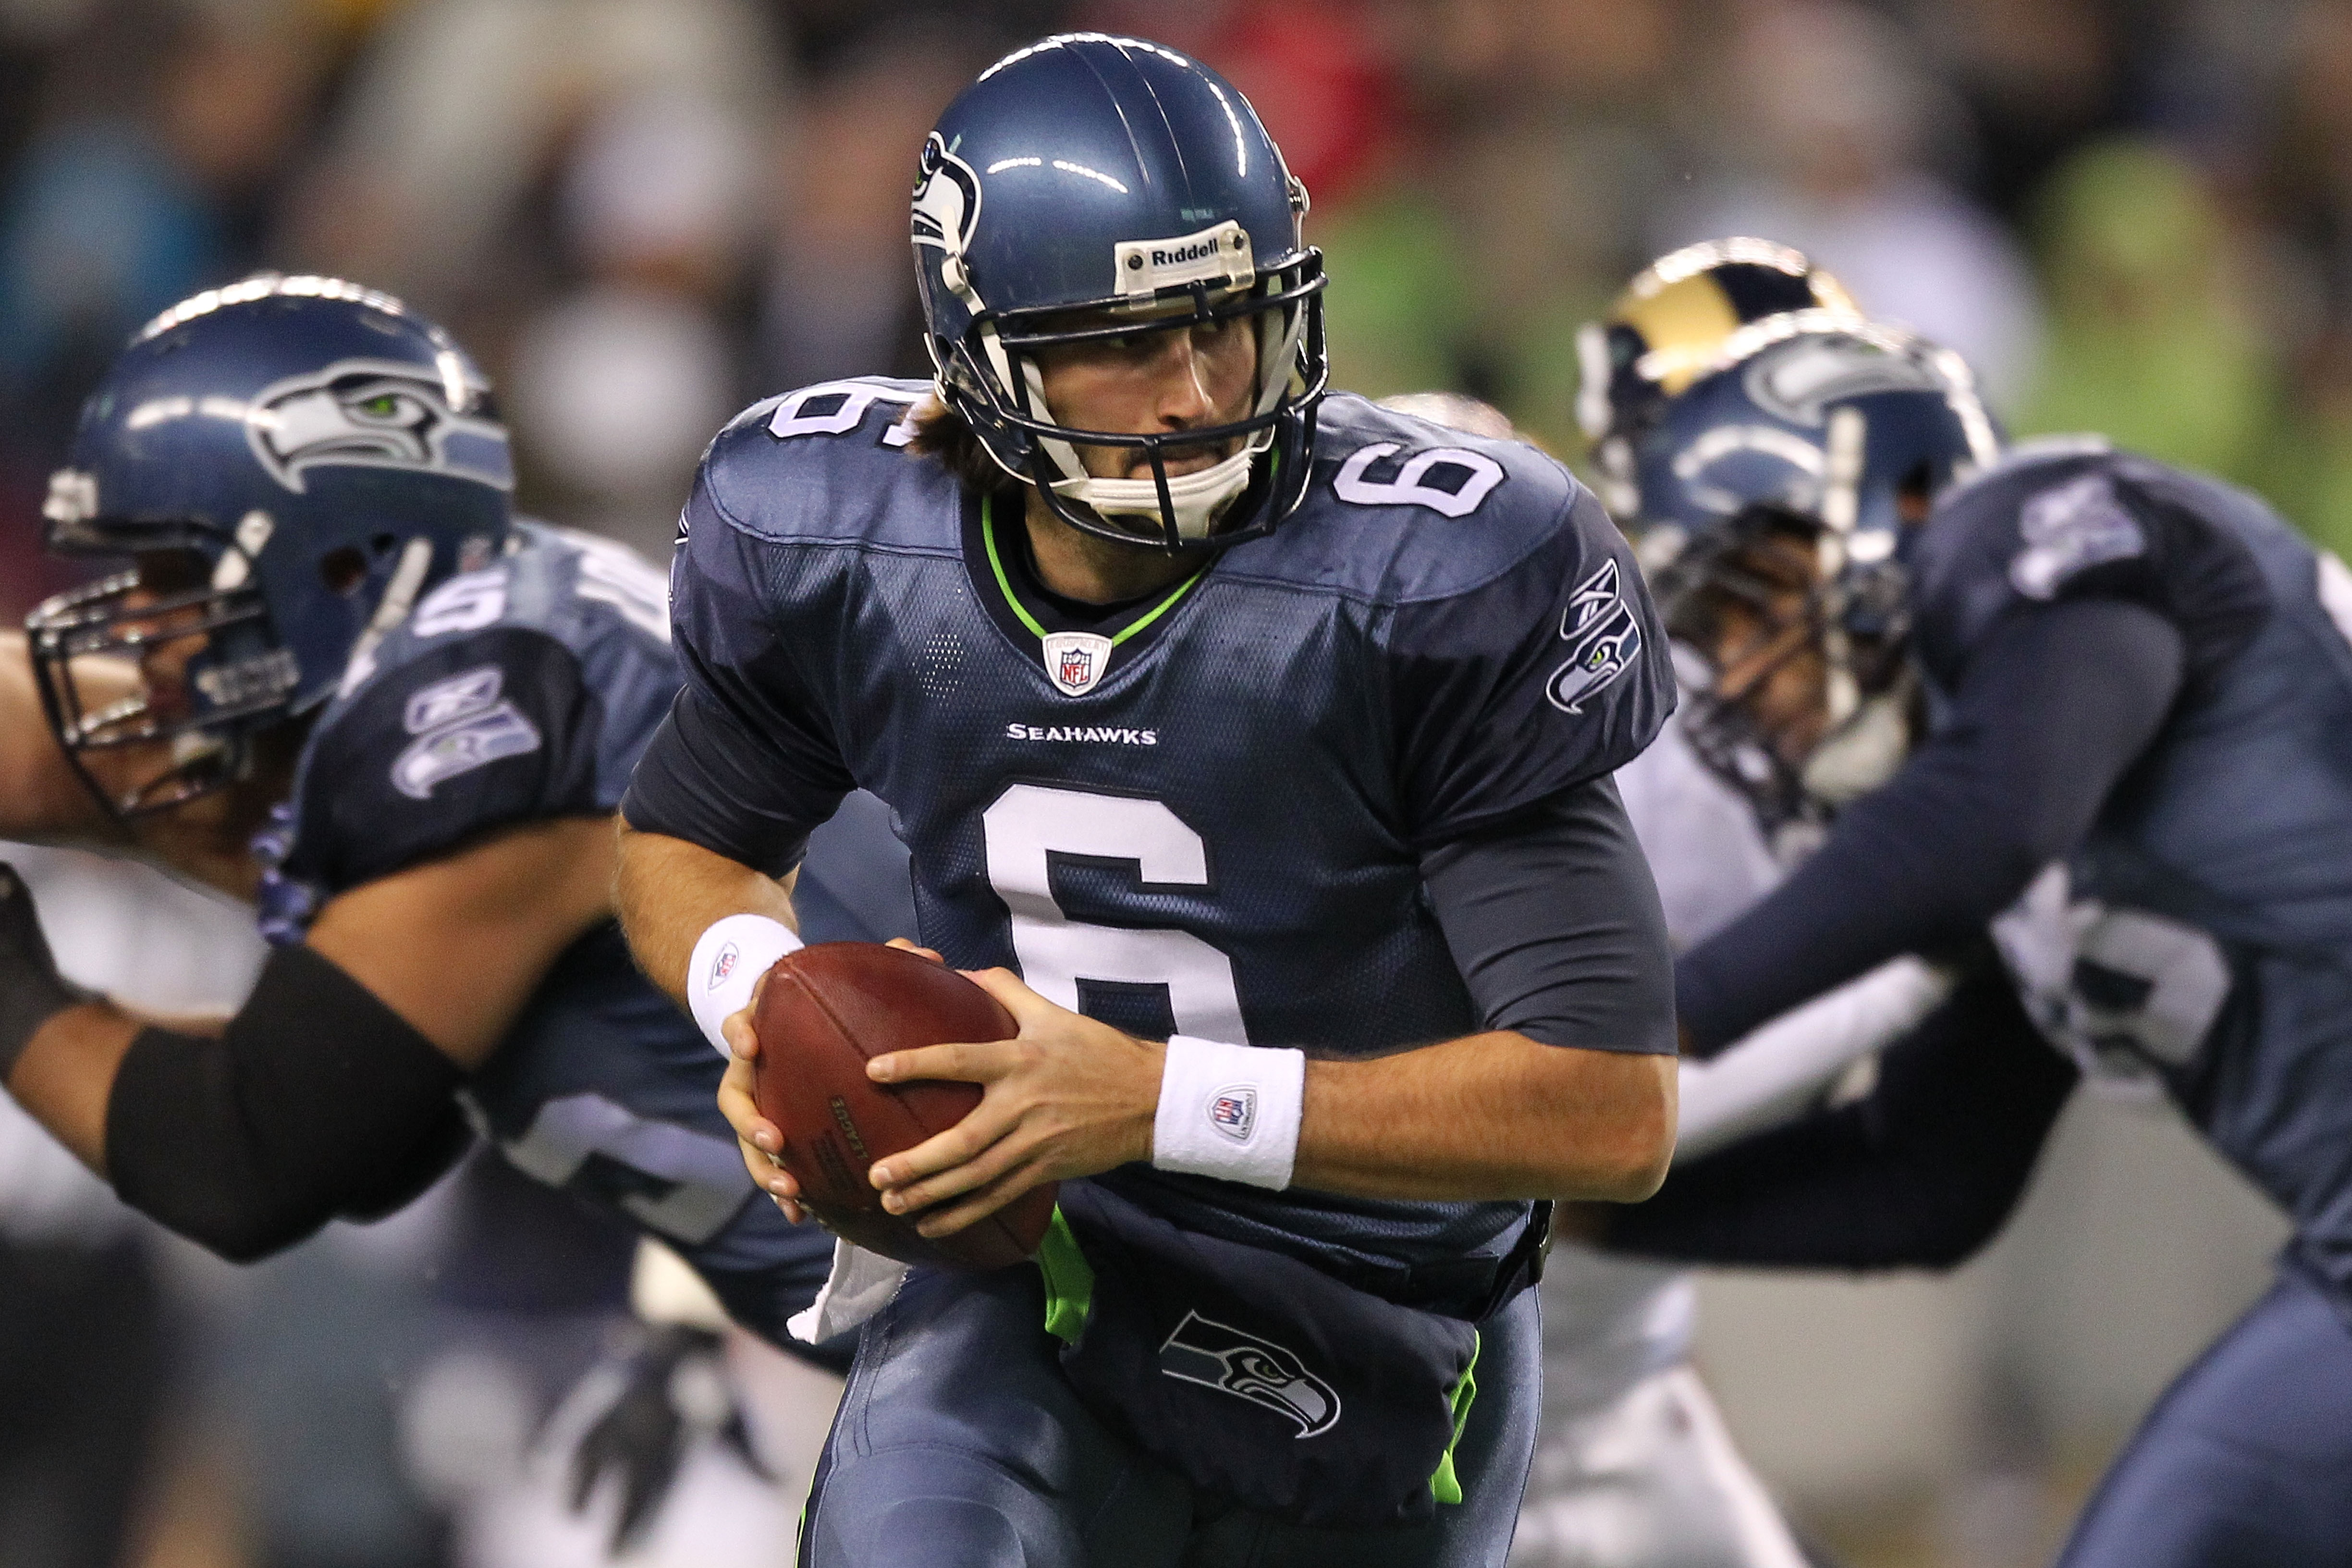 SEATTLE, WA - JANUARY 02:  Quarterback Charlie Whitehurst #6 of the Seattle Seahawks rolls out with the ball during their game against the St. Louis Rams at Qwest Field on January 2, 2011 in Seattle, Washington.  (Photo by Otto Greule Jr/Getty Images)